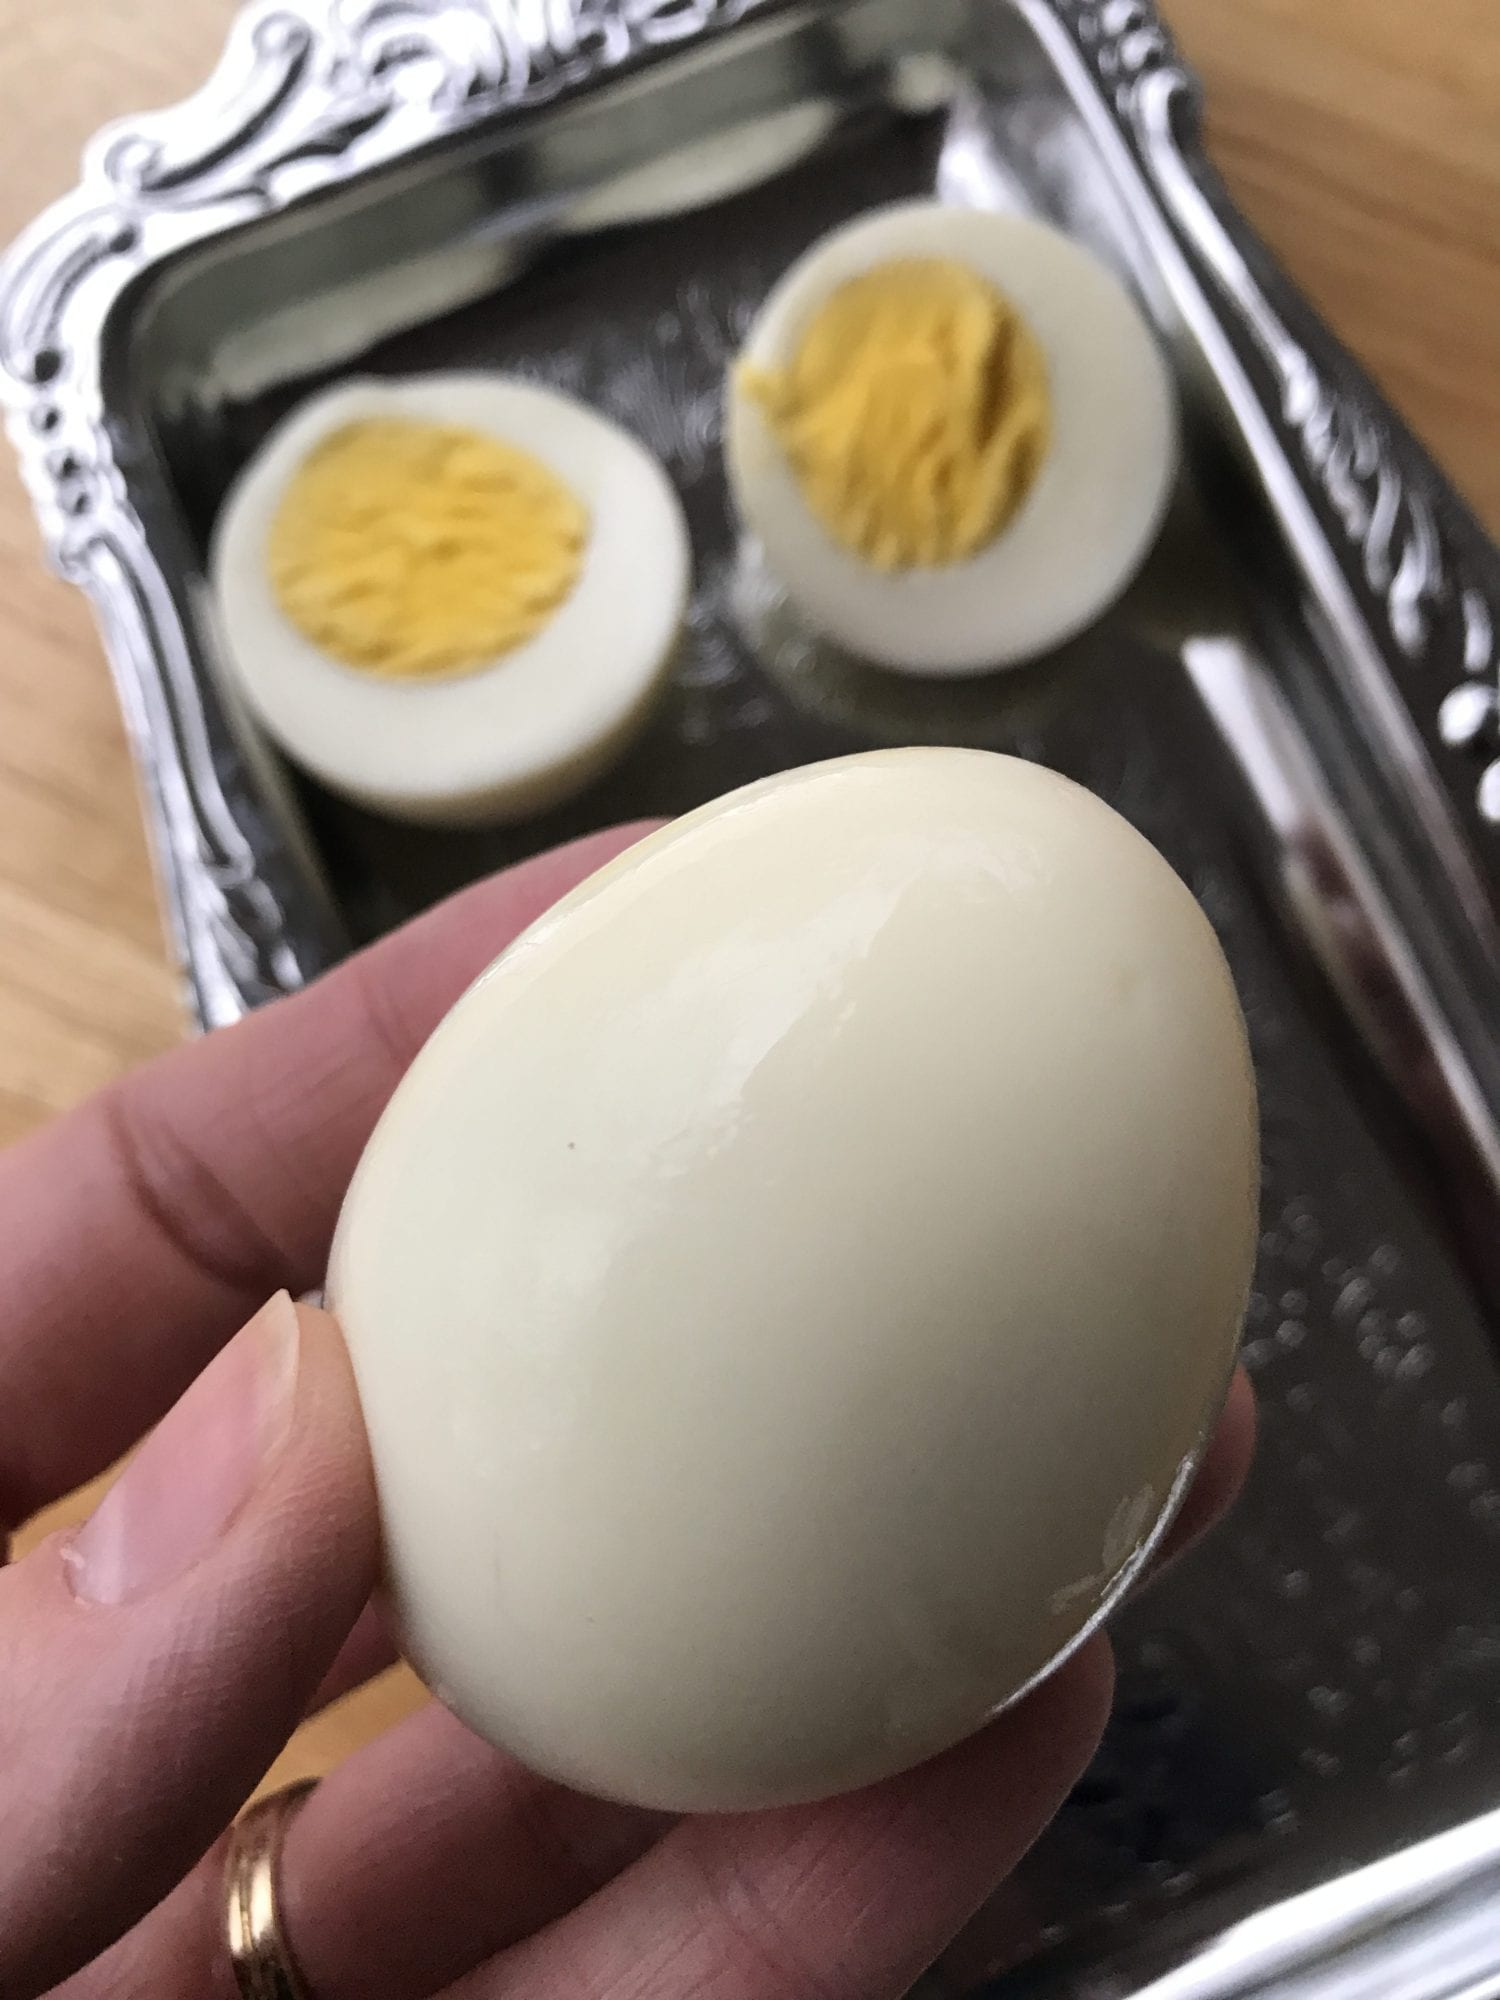 How to make hard boiled eggs in air fryer